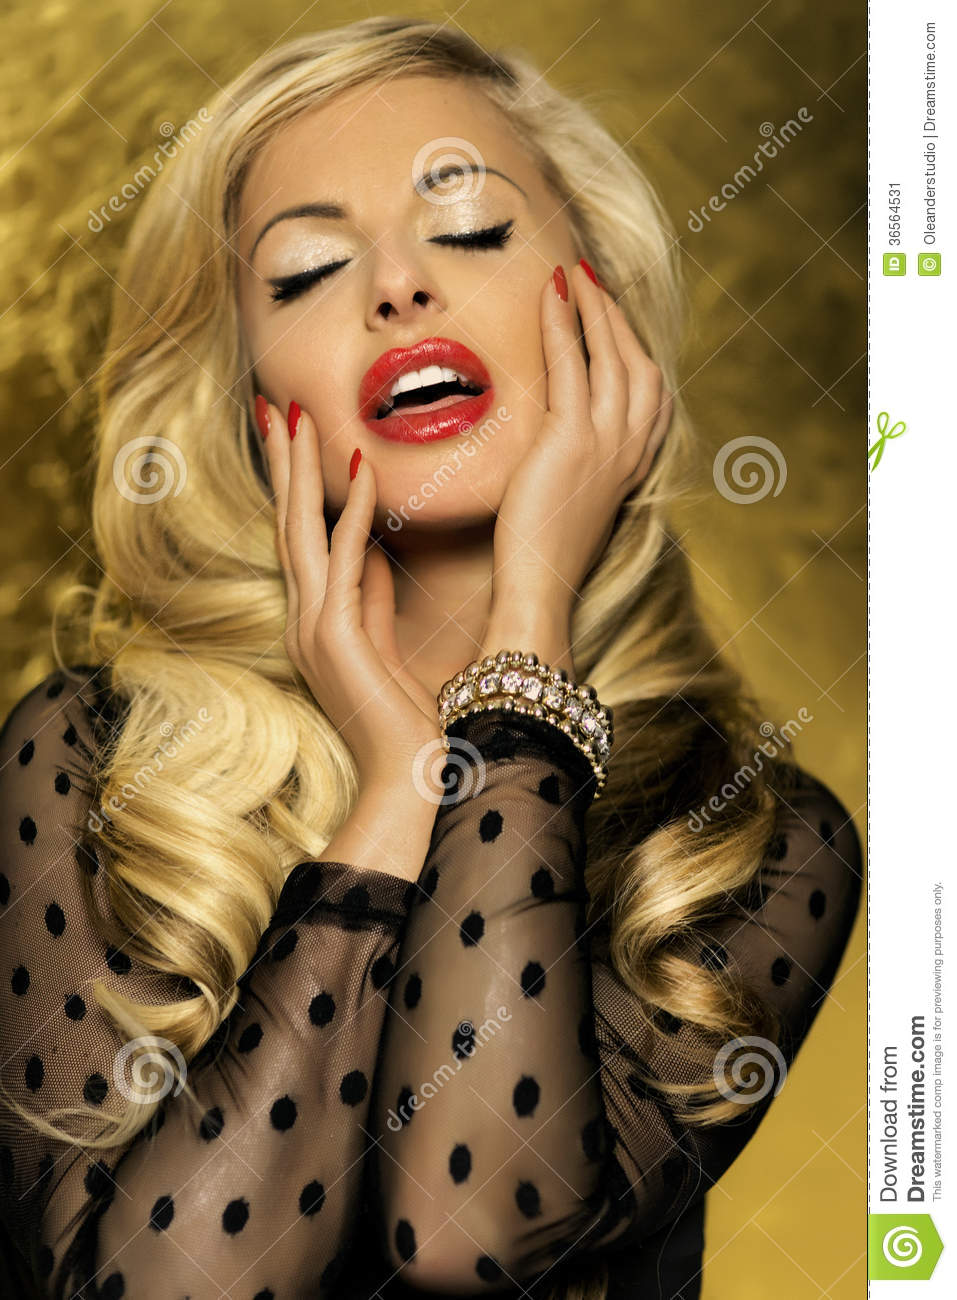 Beautiful blonde woman posing with closed eyes.